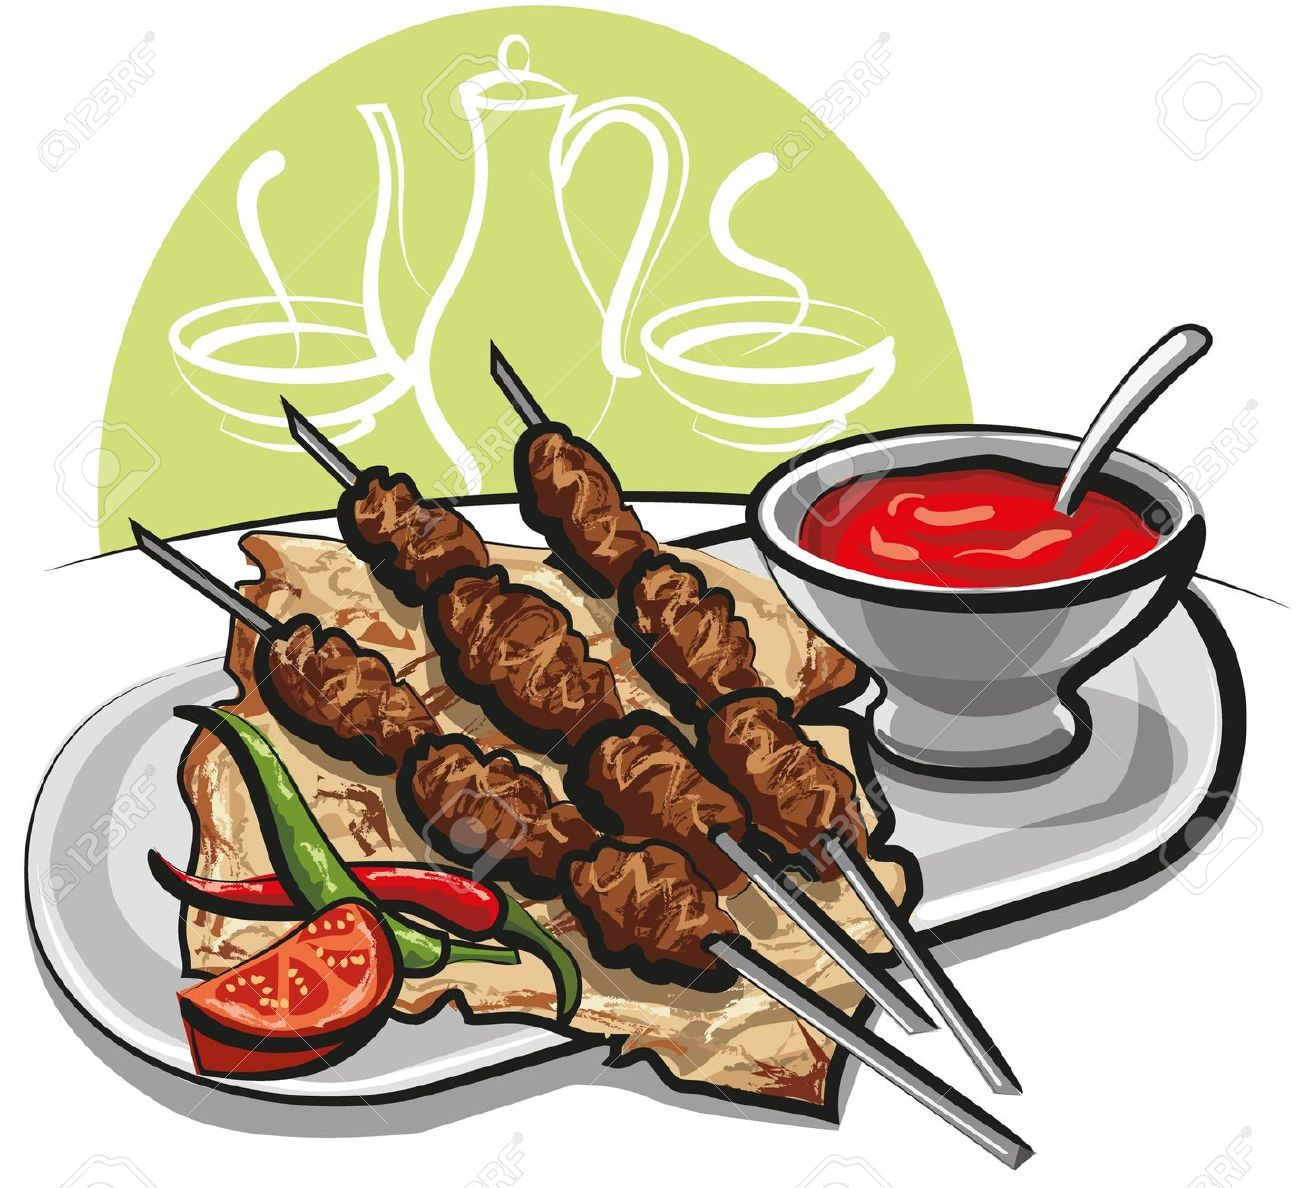 Steak clipart plate food Meat clipart Barbecue meat clipart